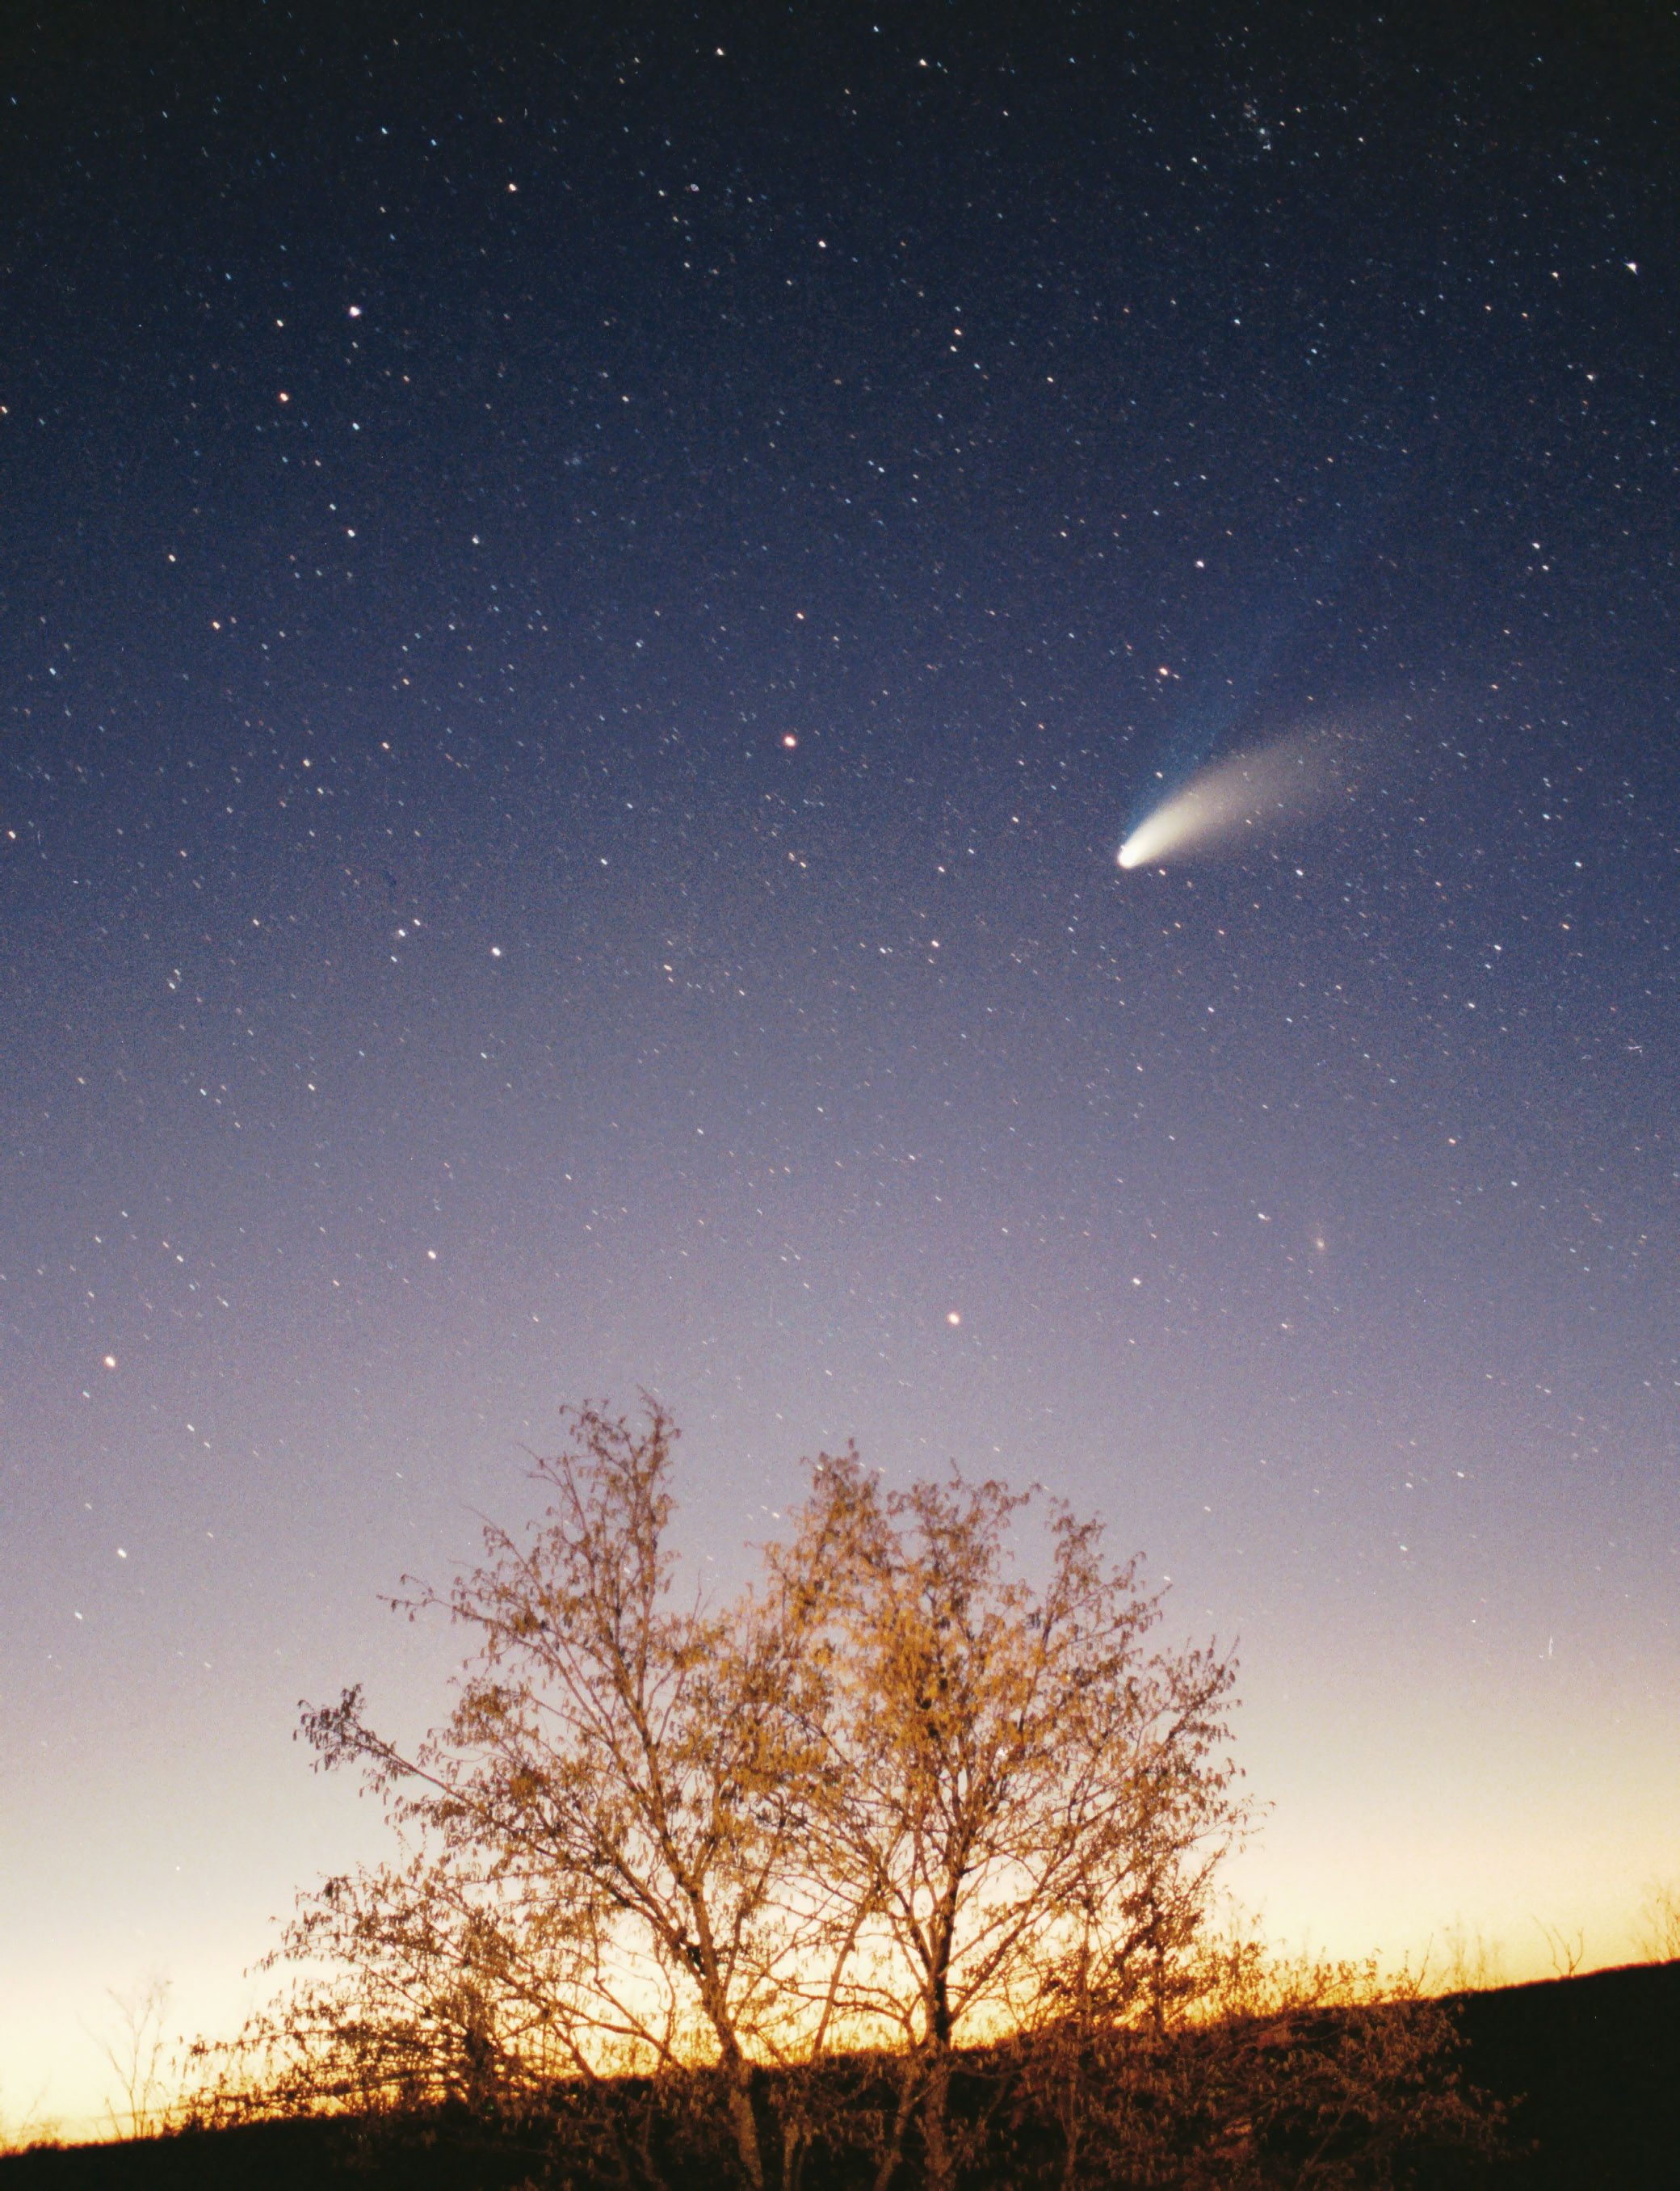 http://upload.wikimedia.org/wikipedia/commons/d/df/Comet-Hale-Bopp-29-03-1997_hires_adj.jpg